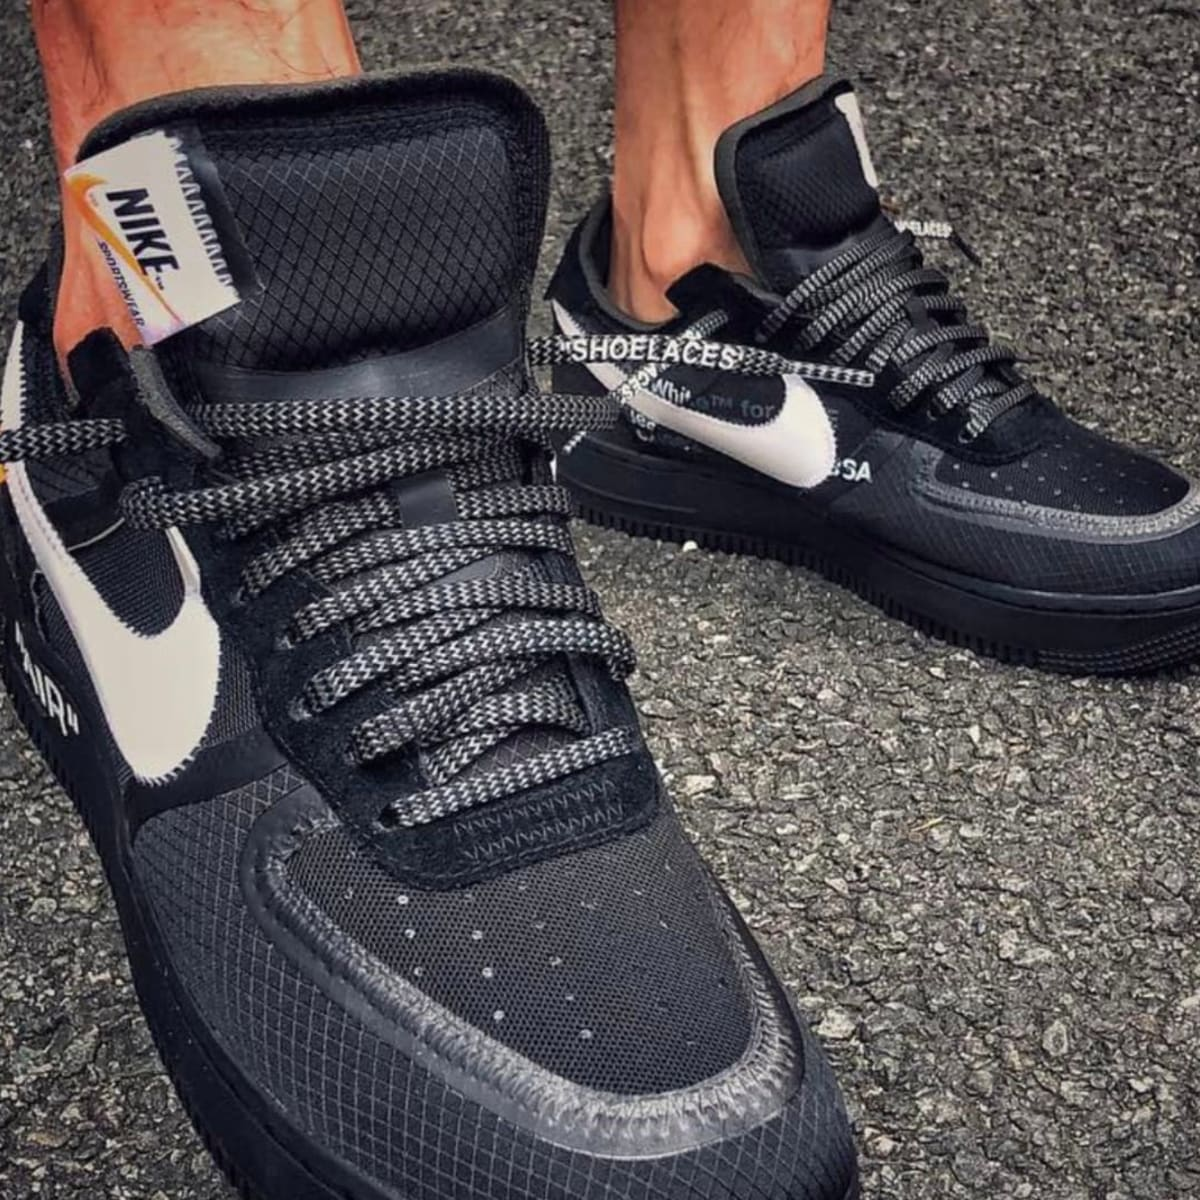 venta caliente barato características sobresalientes zapatos clasicos A First Look at the Upcoming Off-White x Nike Air Force 1 Low in ...